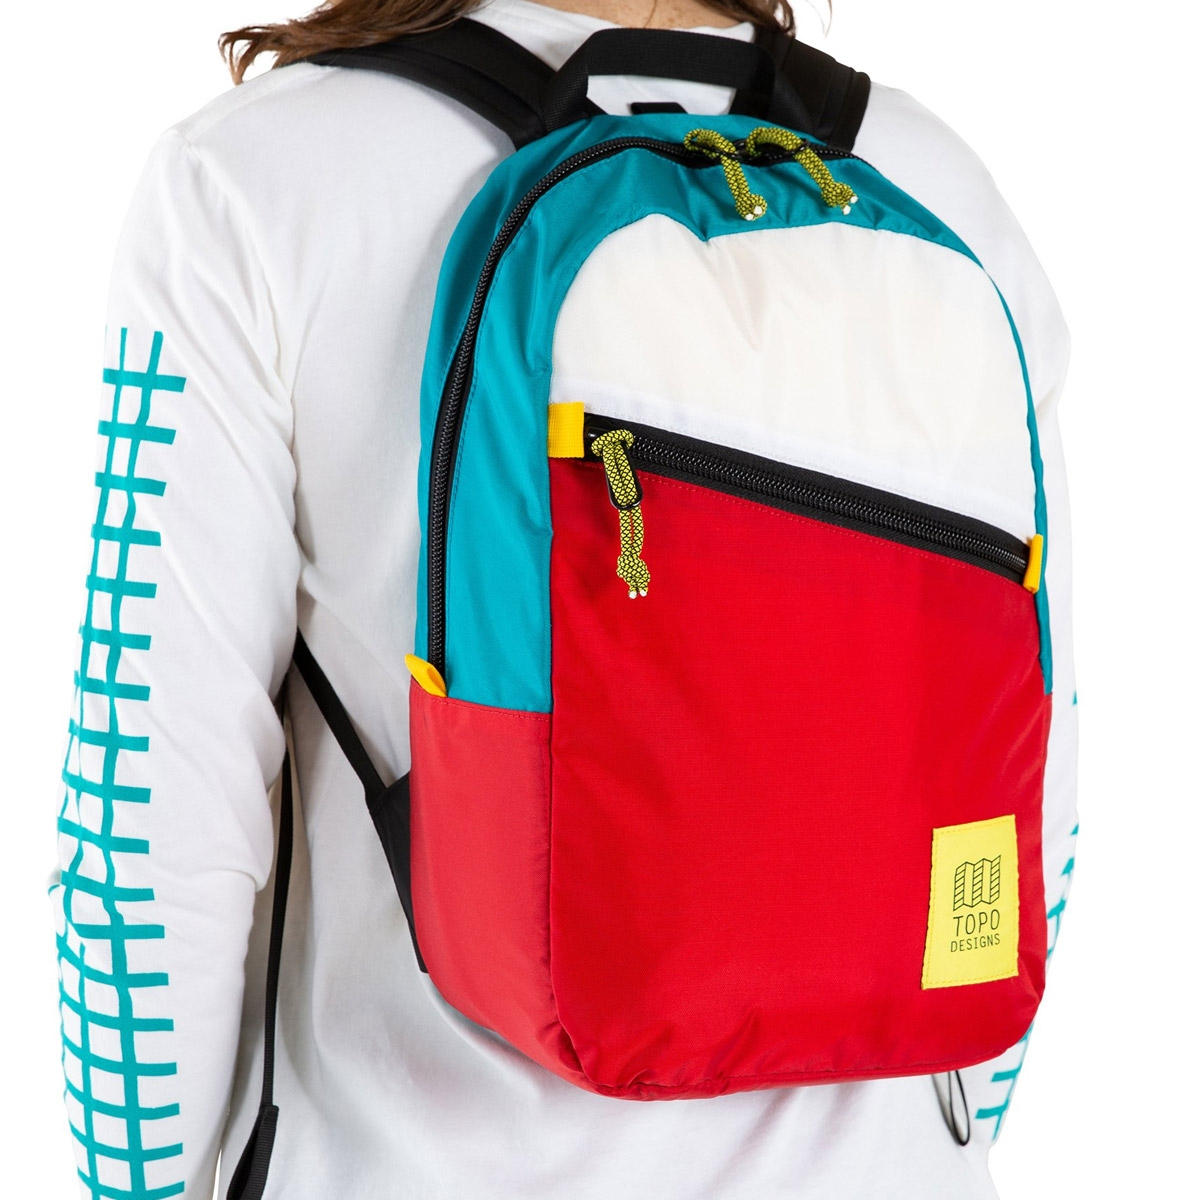 Topo Designs Light Pack White/Red/Turquoise , lightweight carry-all bag, also perfect pack for hiking